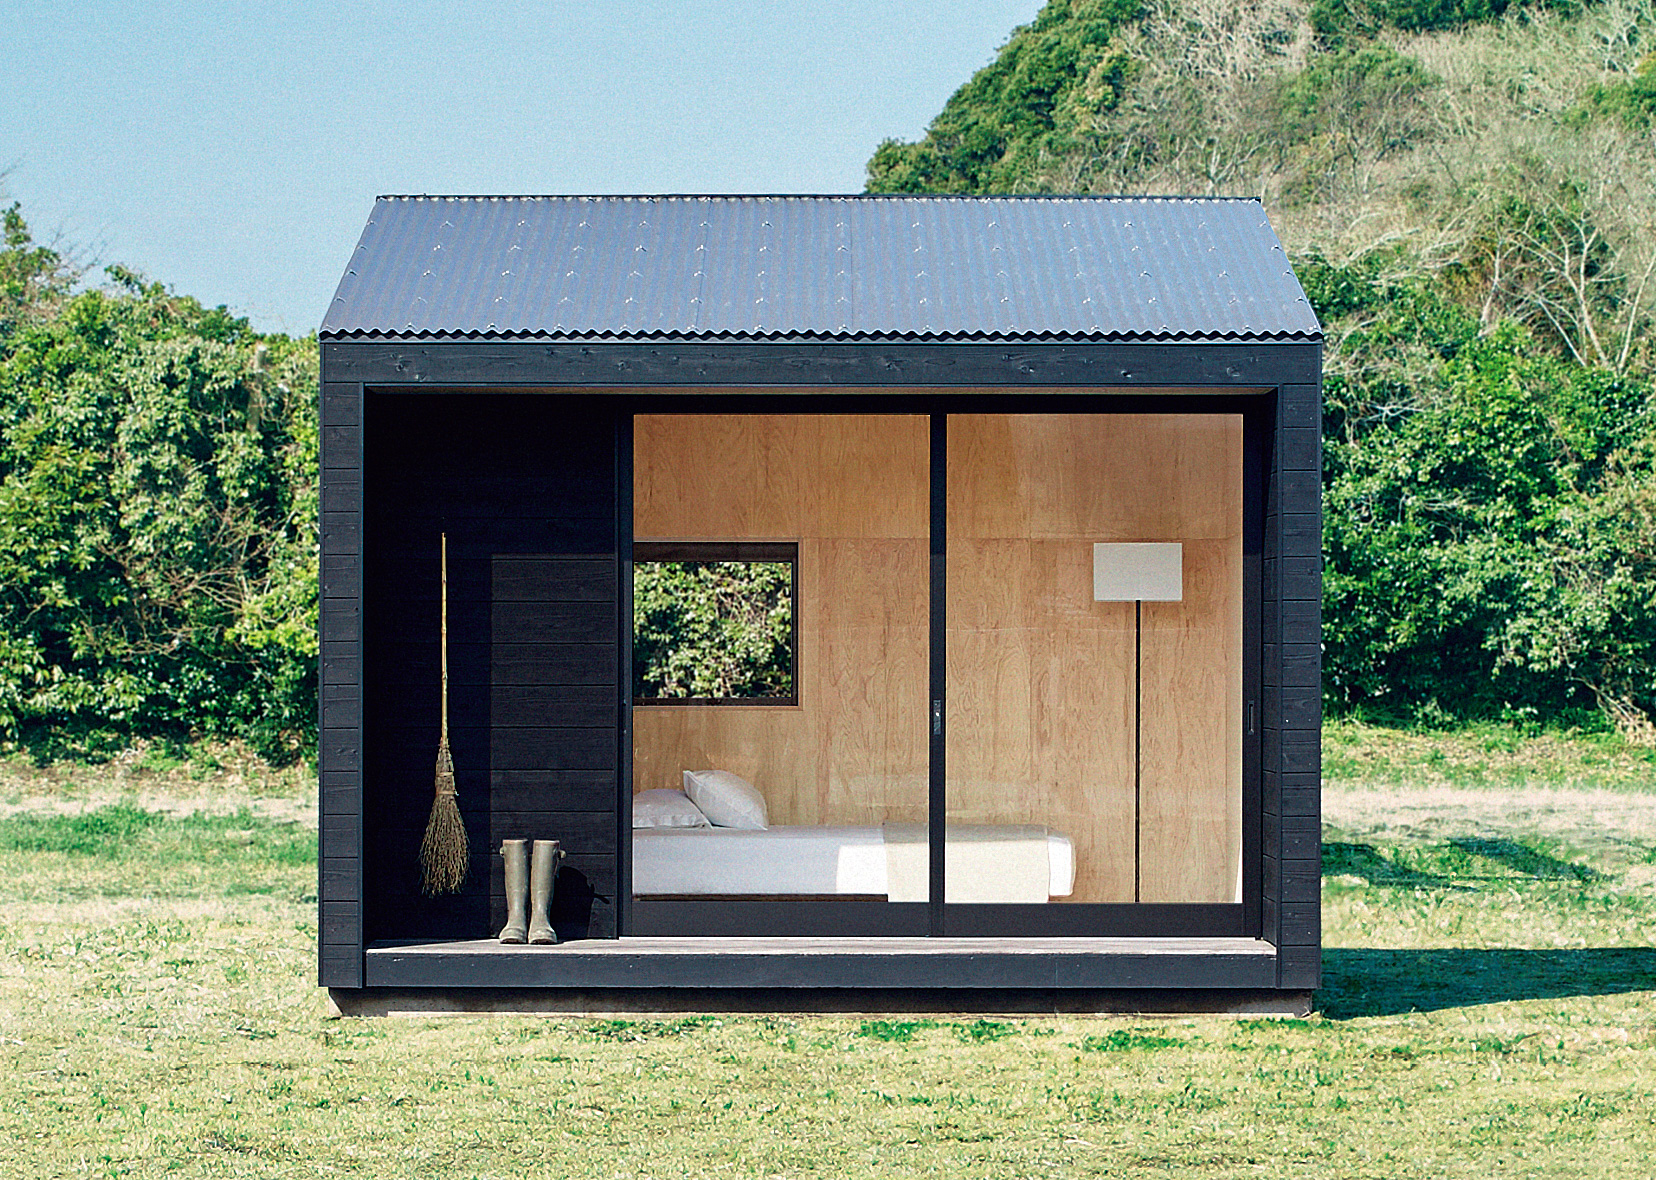 smallhouse2.jpg